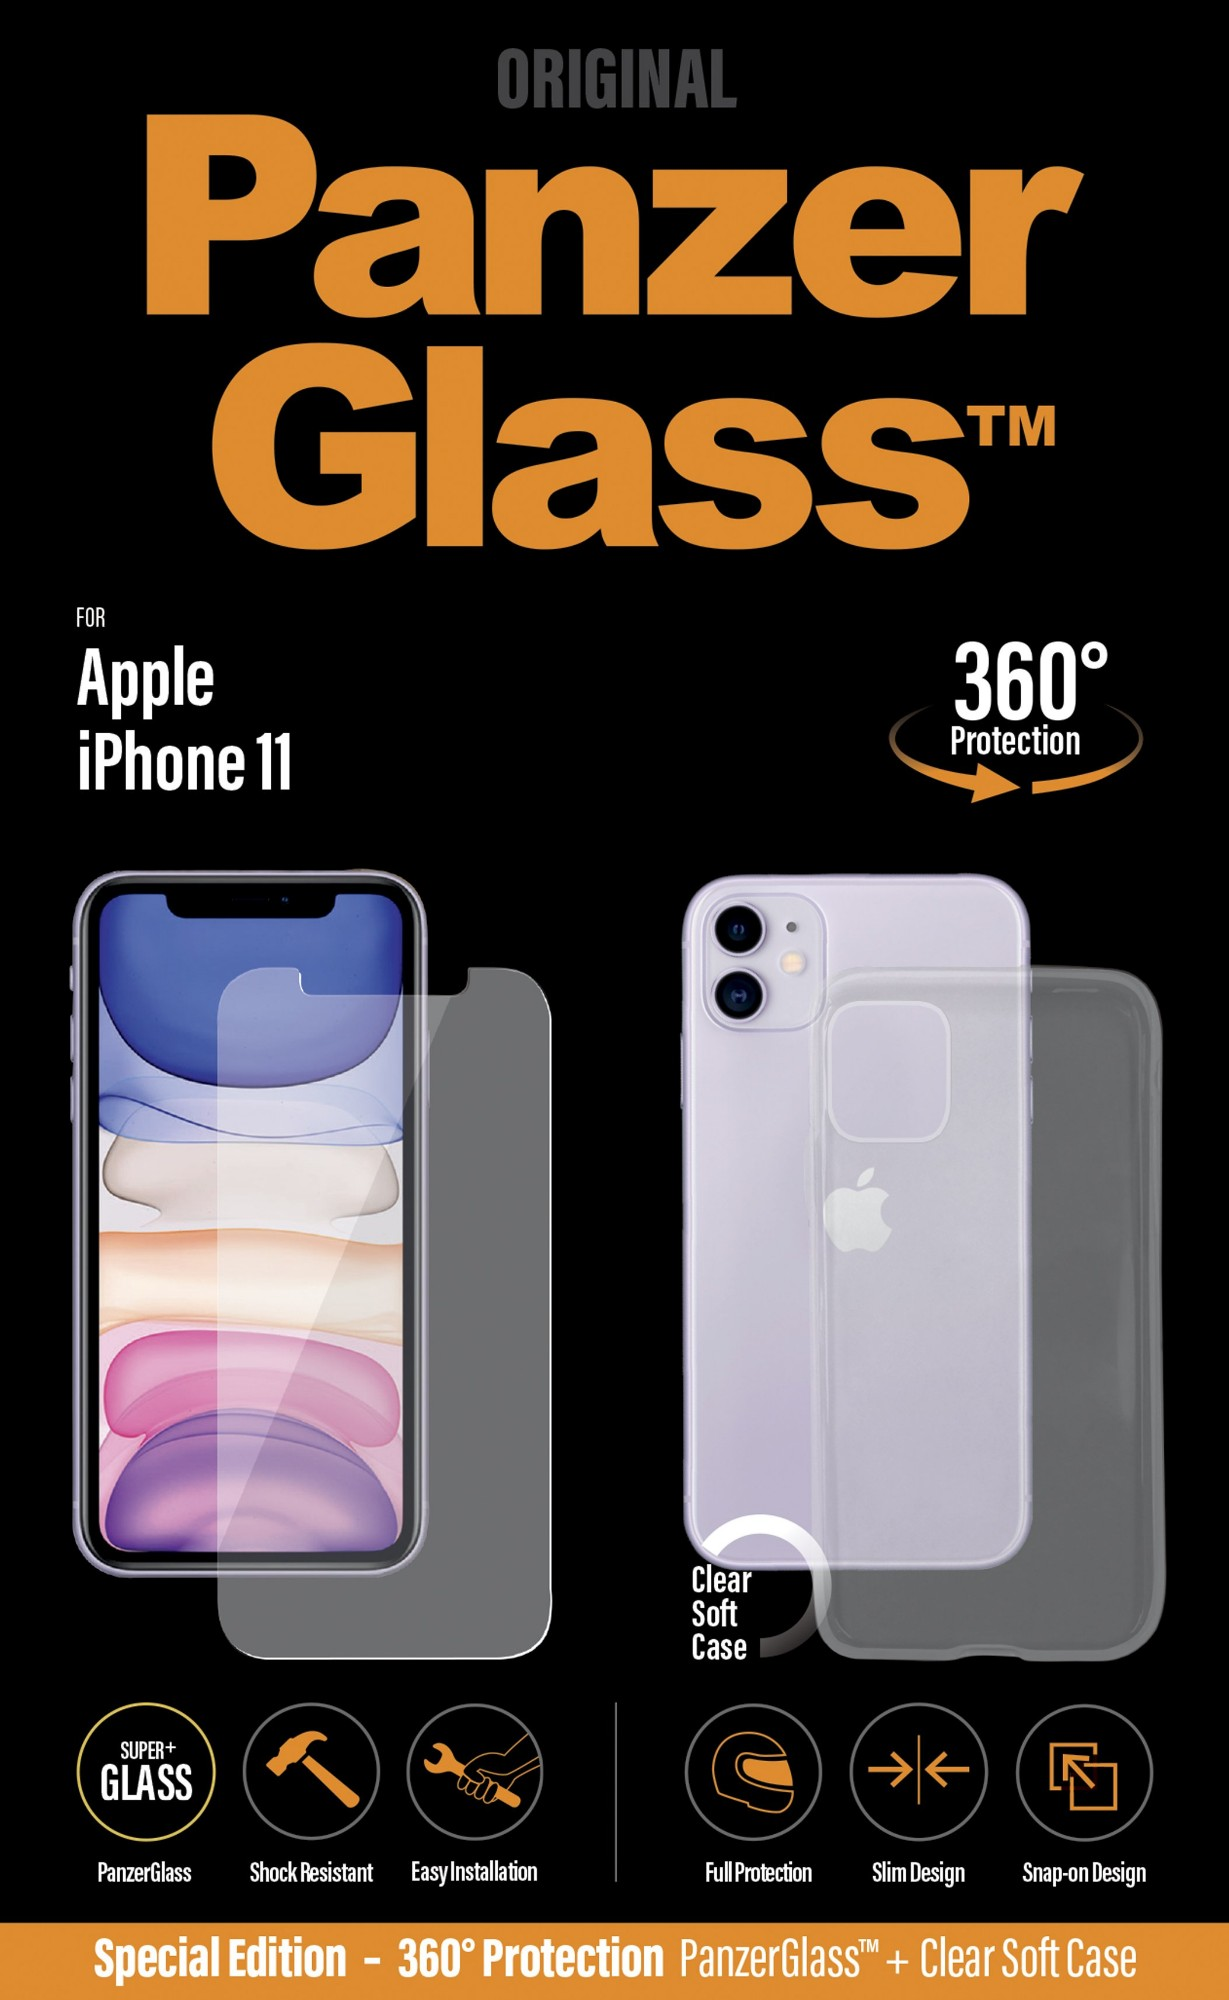 360 PROTECTION IPHONE 11 W. PG CASE